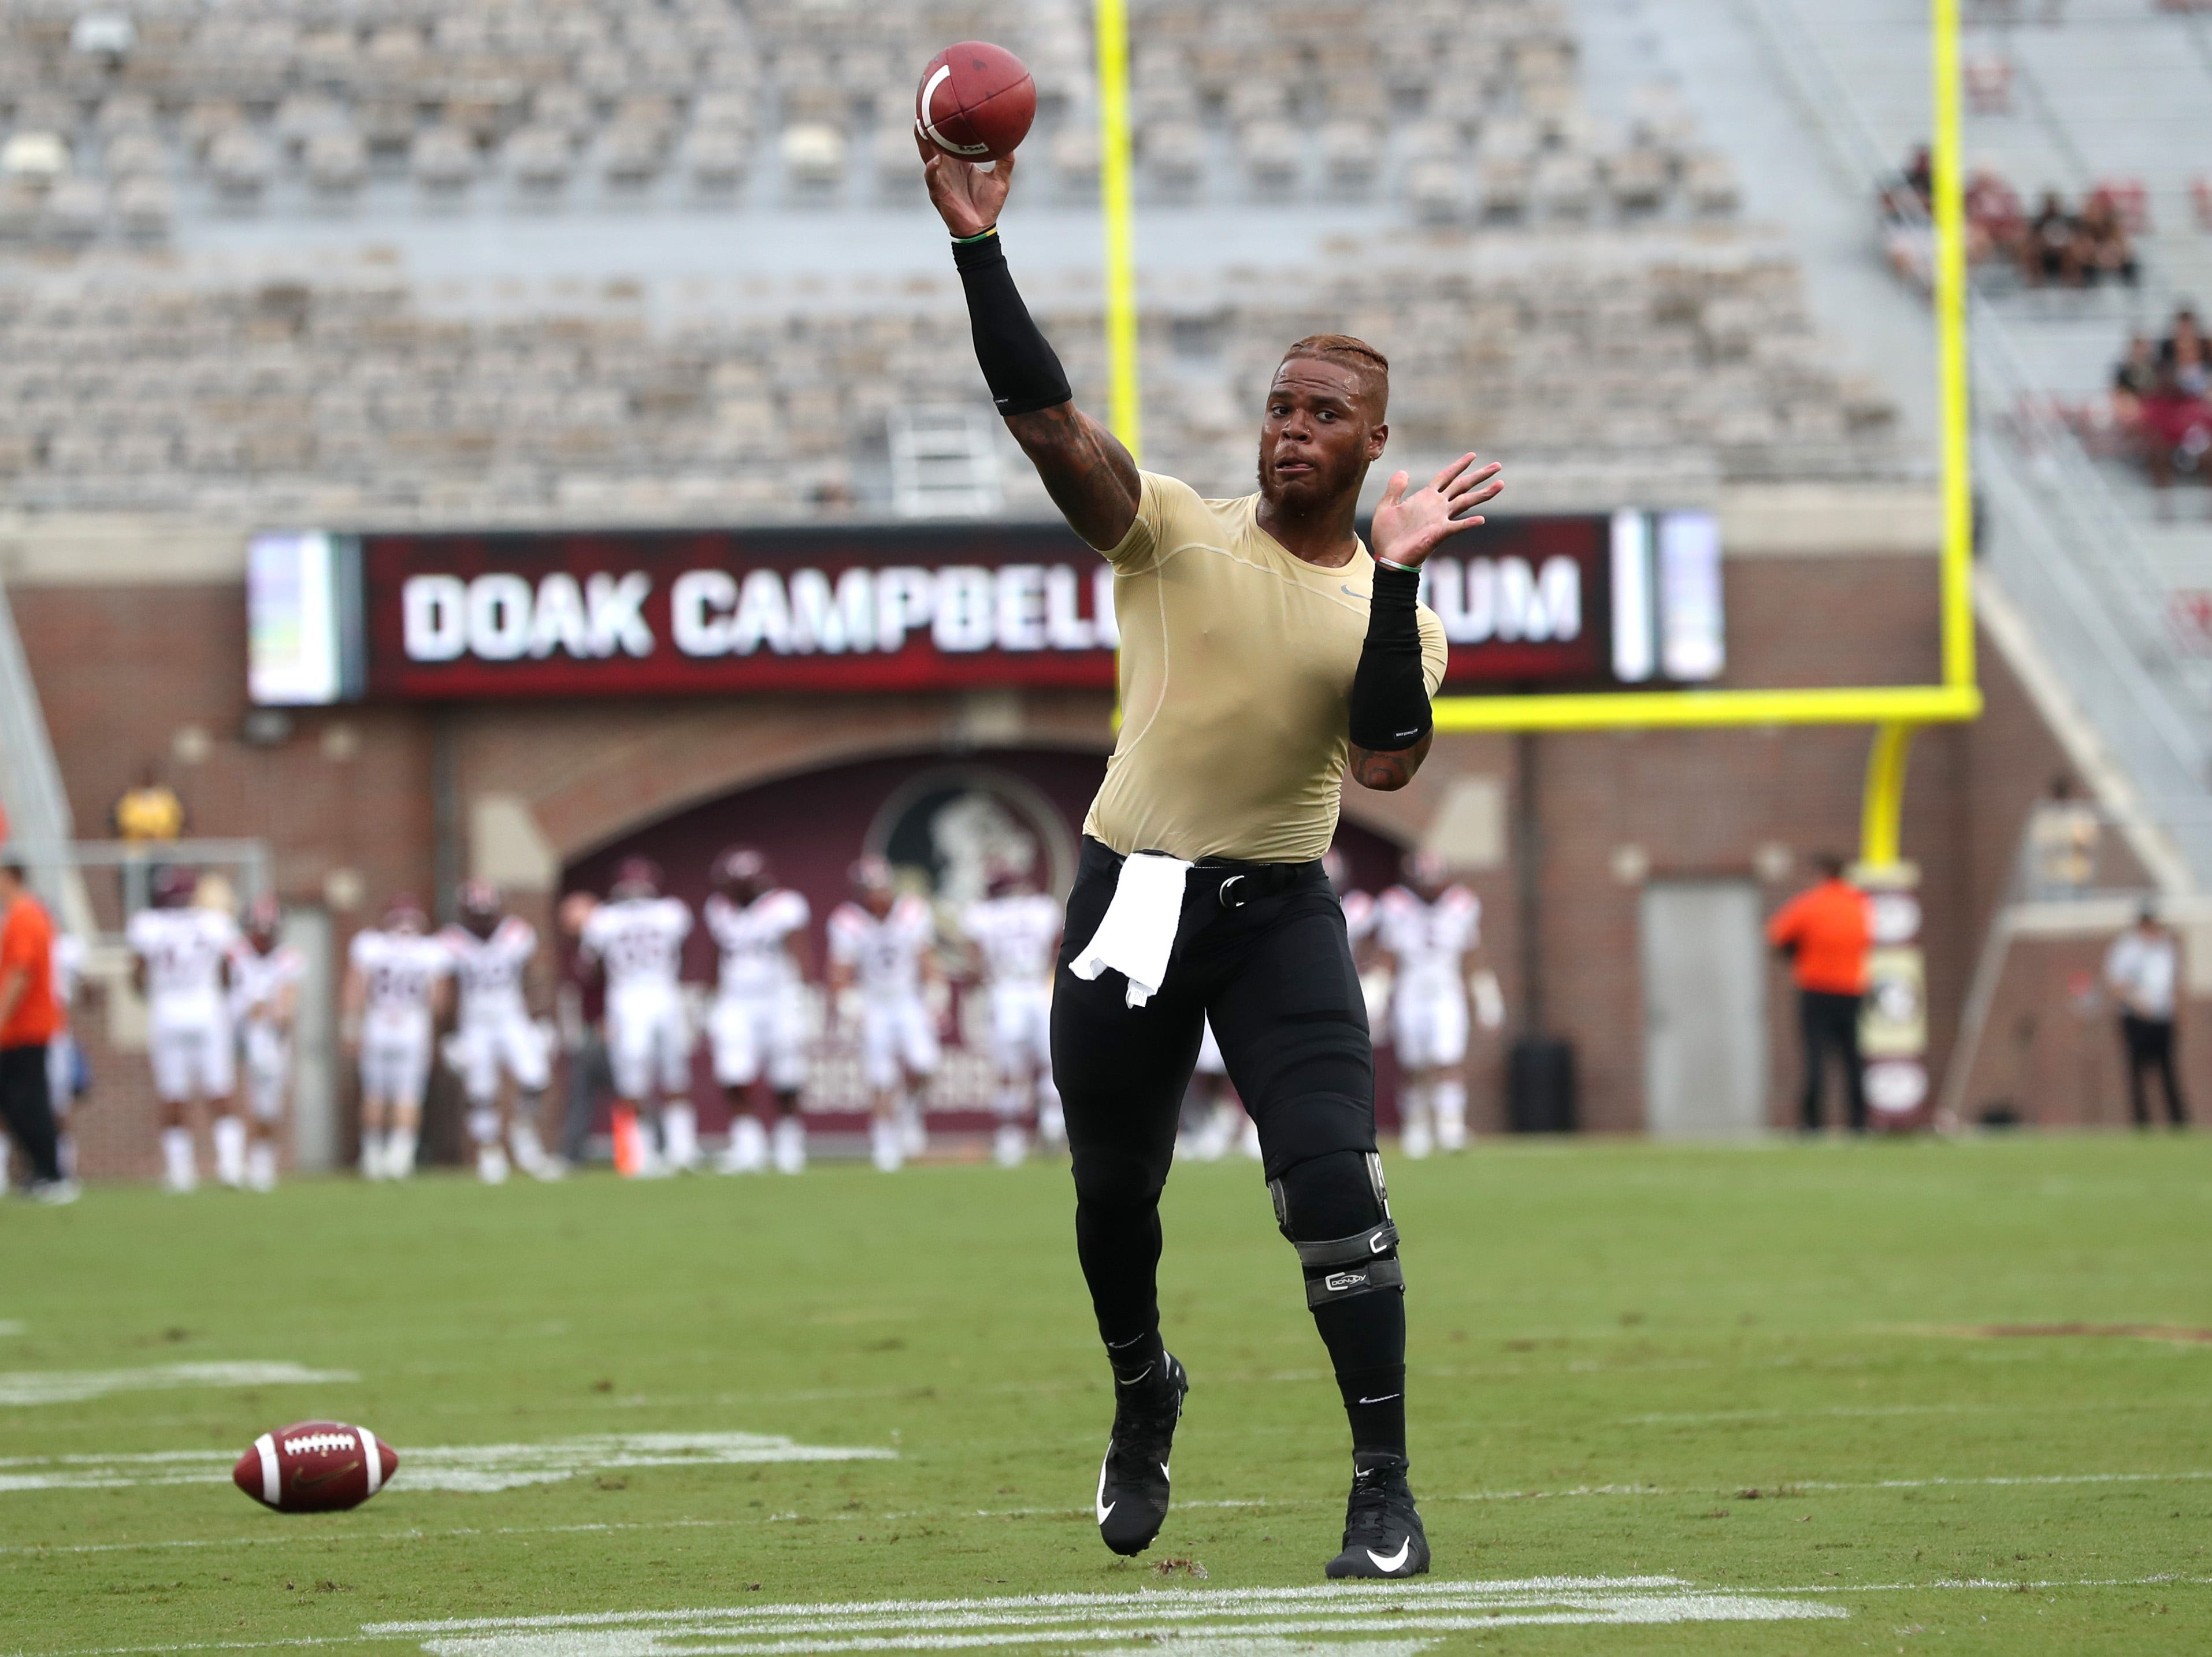 FSU's Deondre Francois warms up before their game against Virginia Tech to open the season at Doak Campbell Stadium in Tallahassee, Fla. On Monday Sept. 3, 2018.